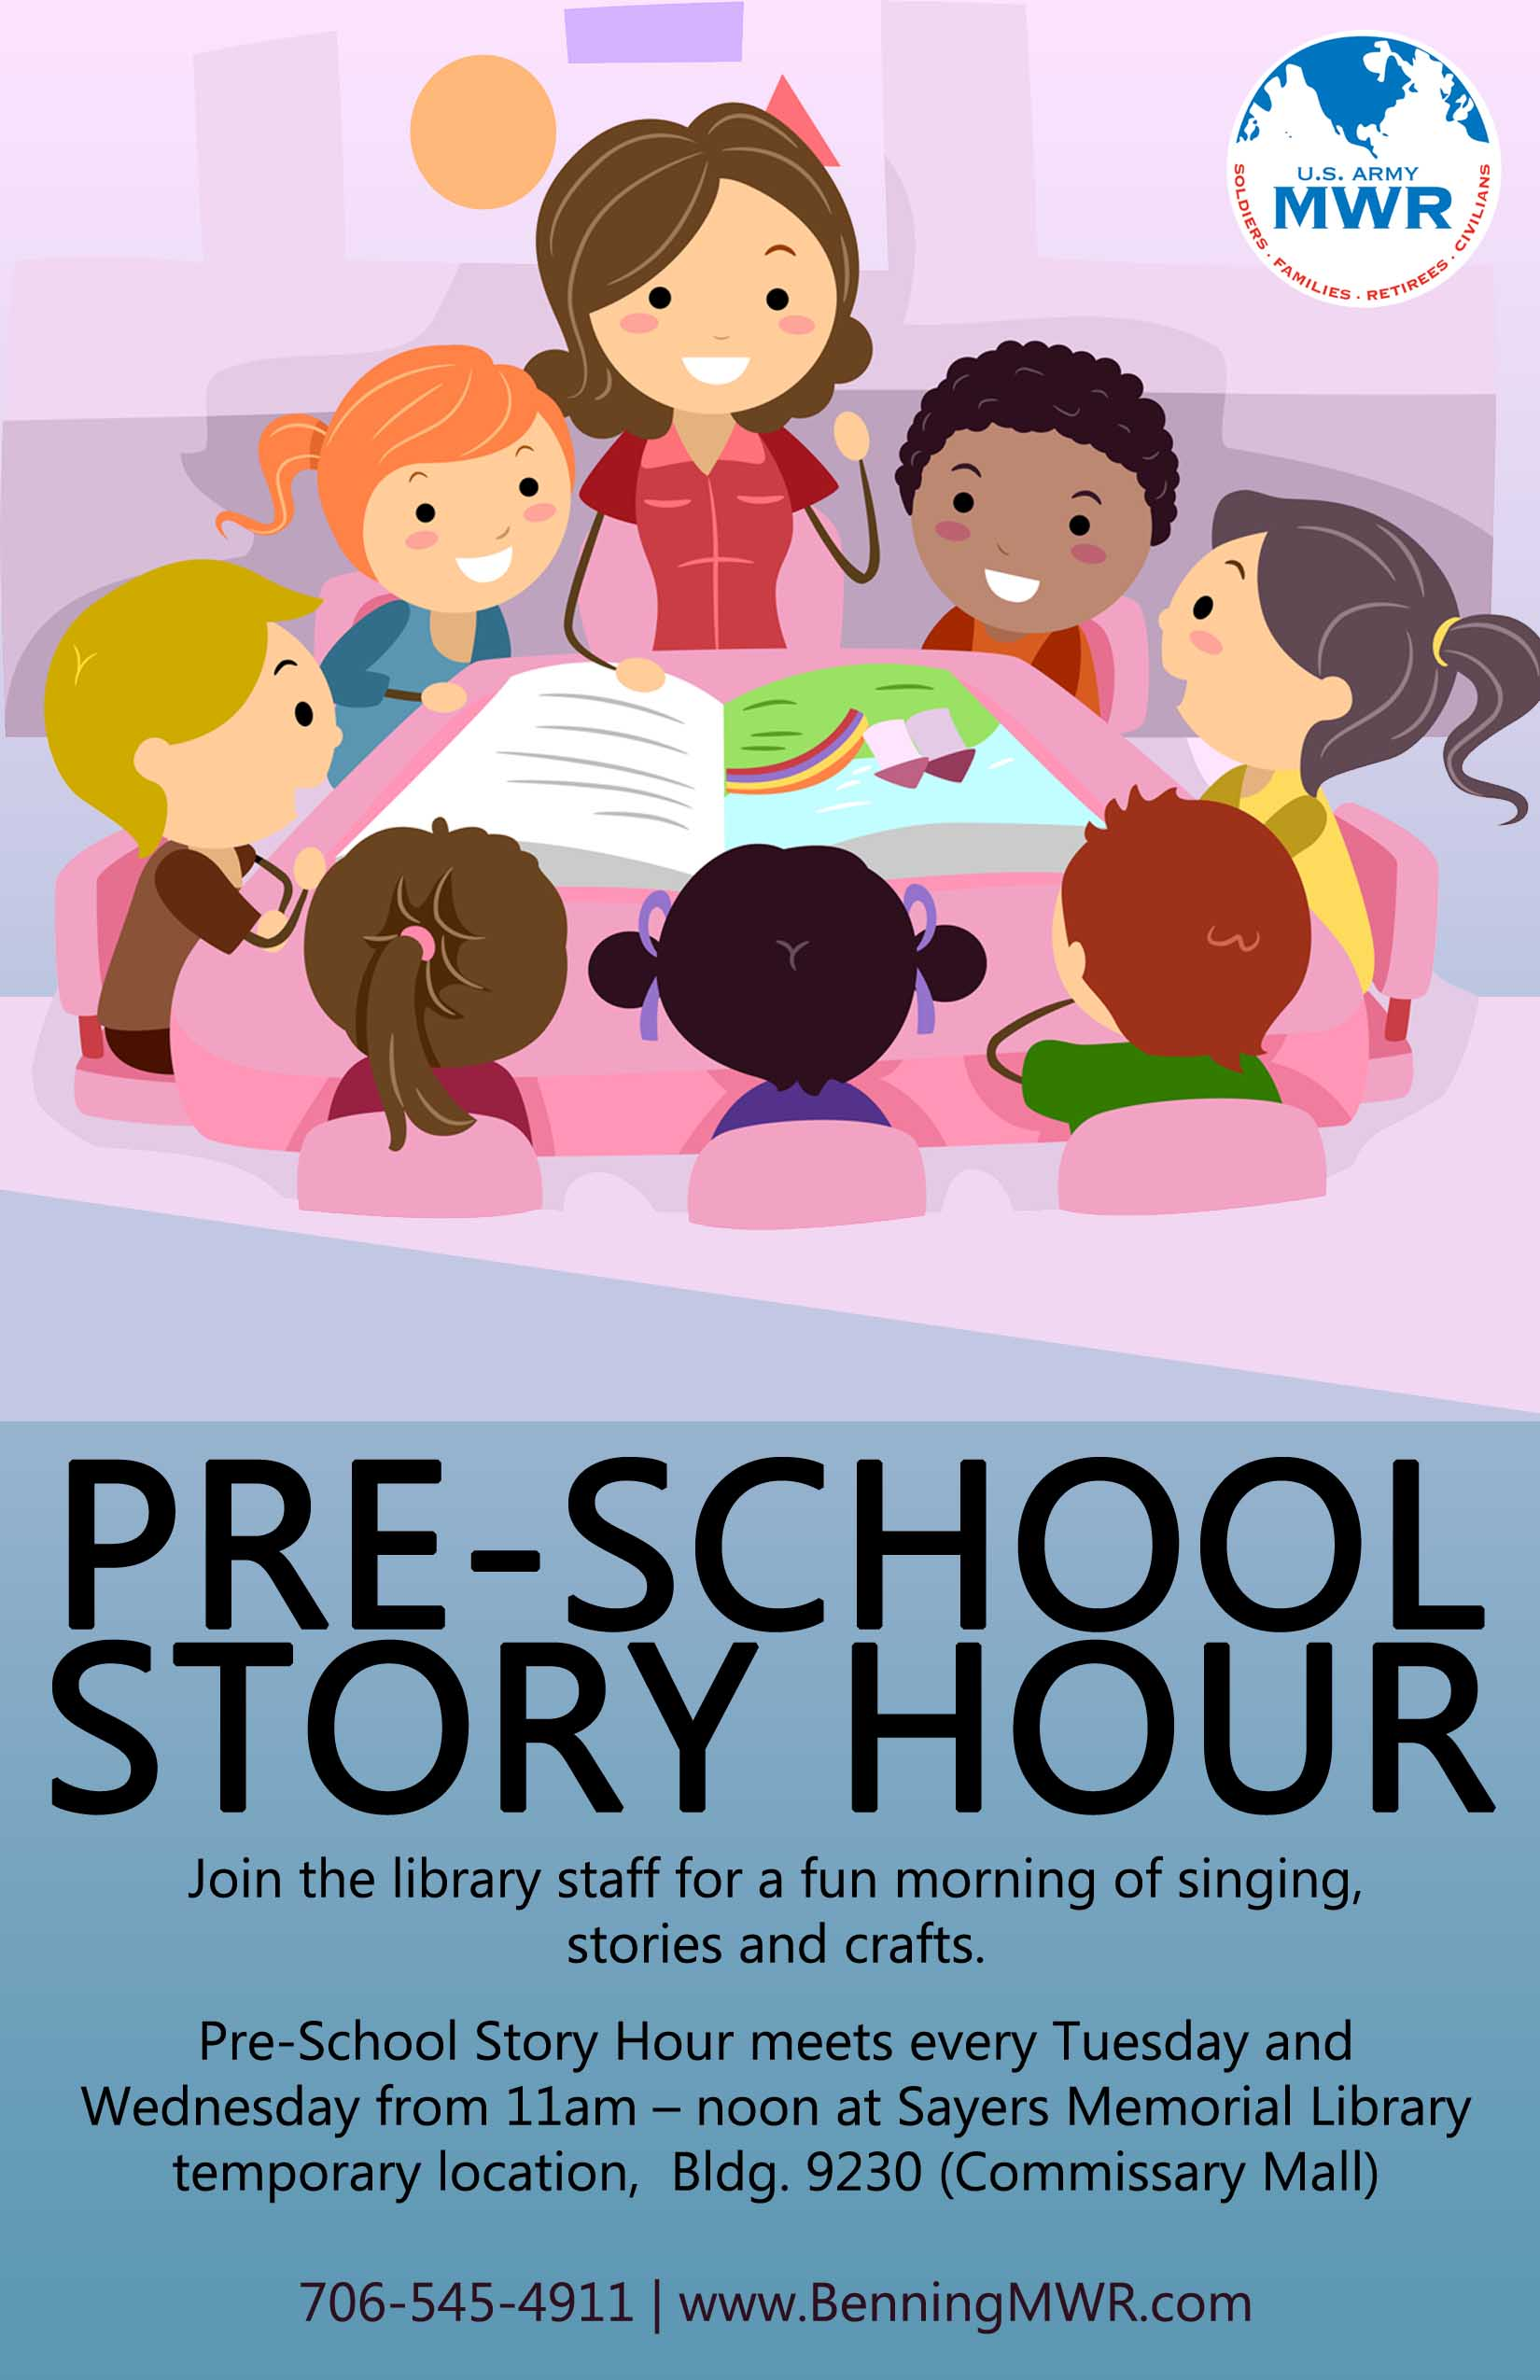 Pre-school Story Hour at Sayers Memorial Library